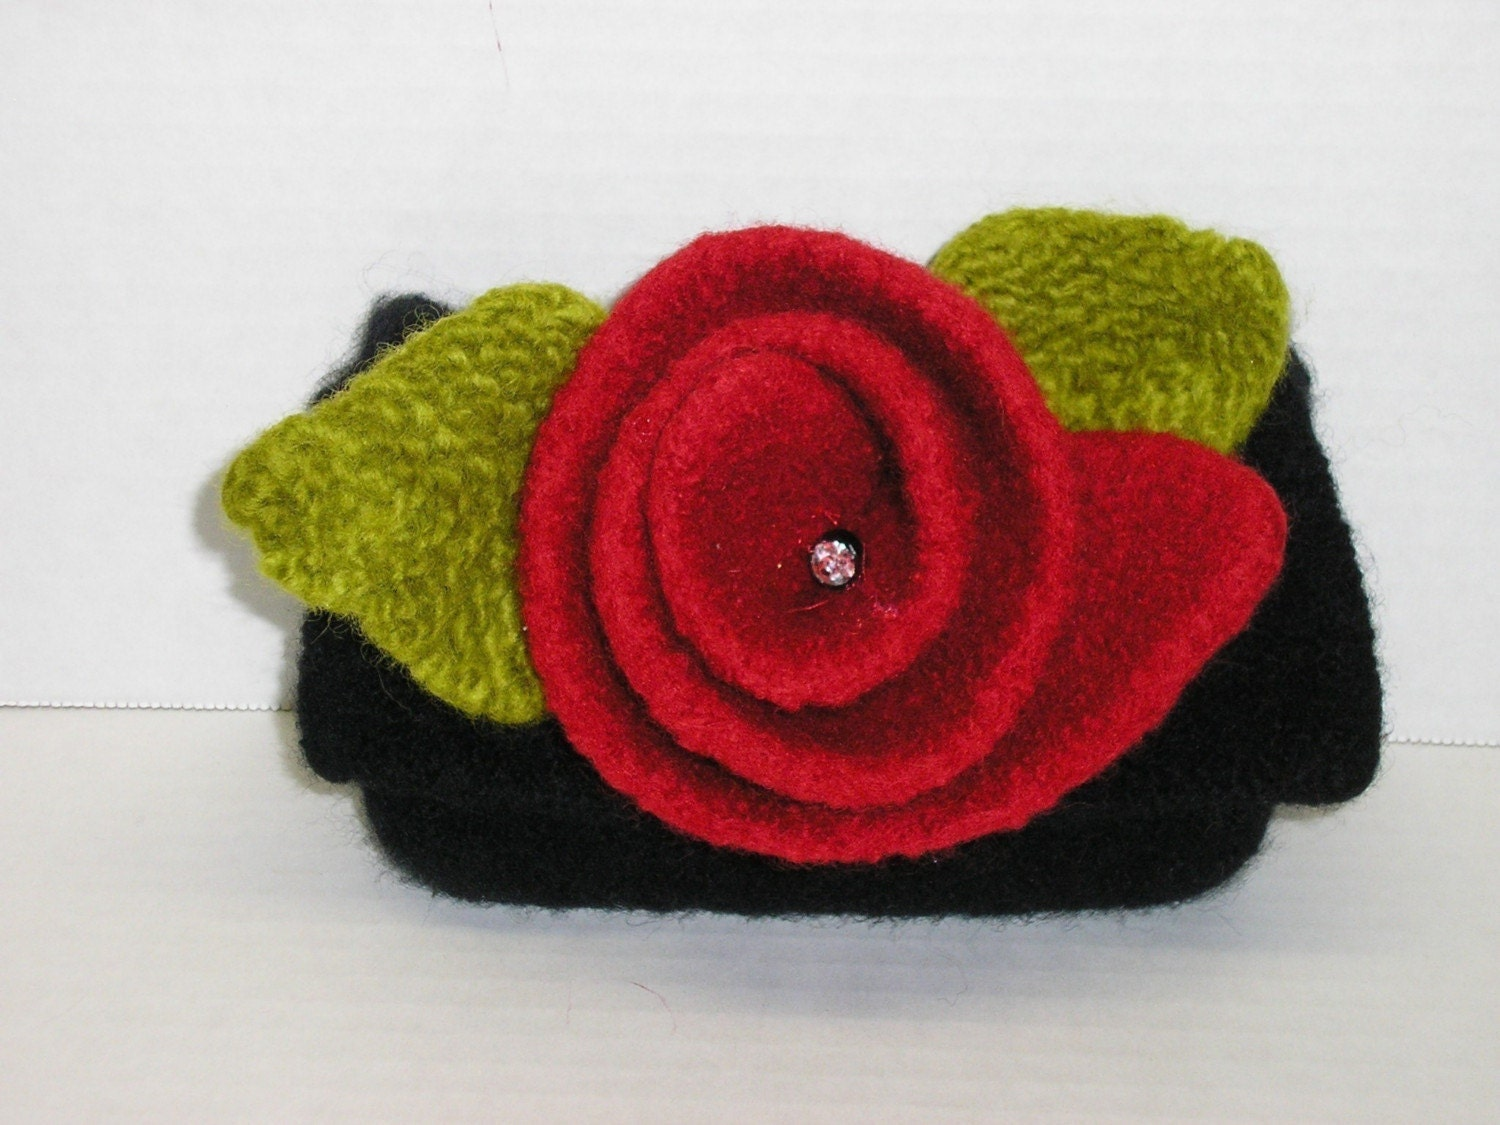 Felted Flower Slipper Socks: Knitting Slipper Pattern from Boye